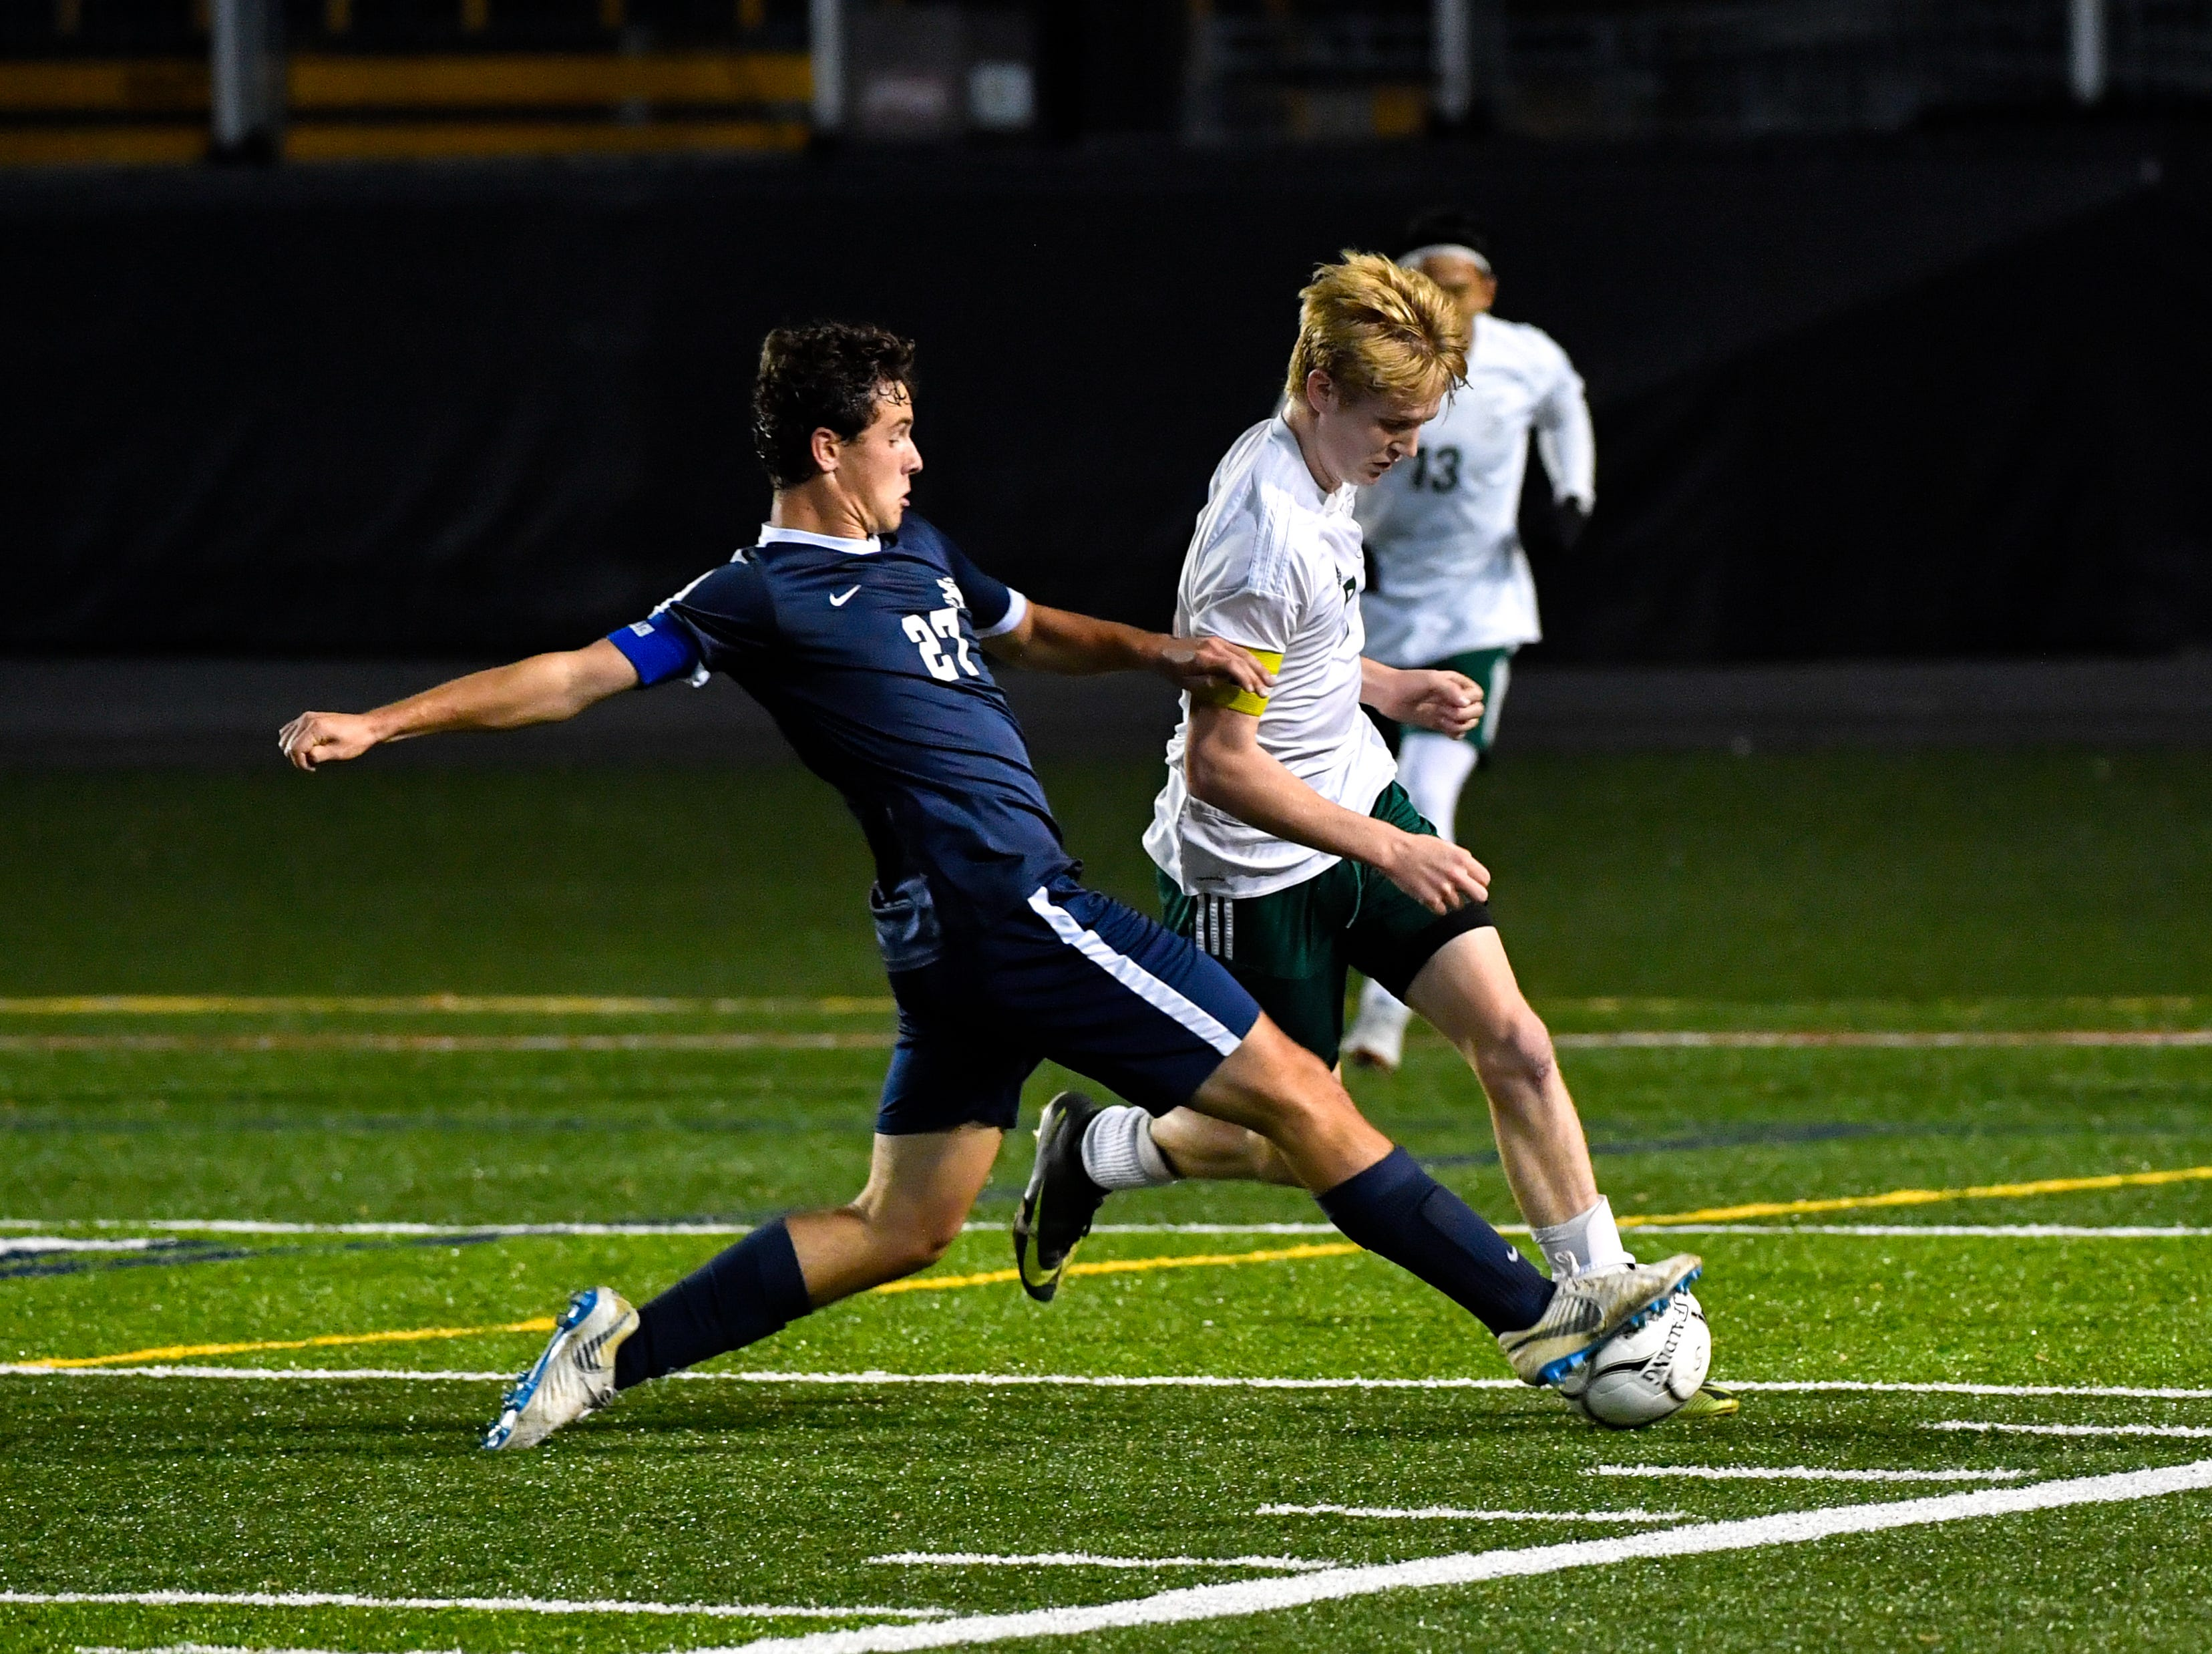 Camp Hill's Ben Brodie (27) slide tackles during the District 3 Class 1A boys' soccer finals between York Catholic and Camp Hill at Hersheypark Stadium, October 31, 2018. The Lions beat the Fighting Irish 2-0.